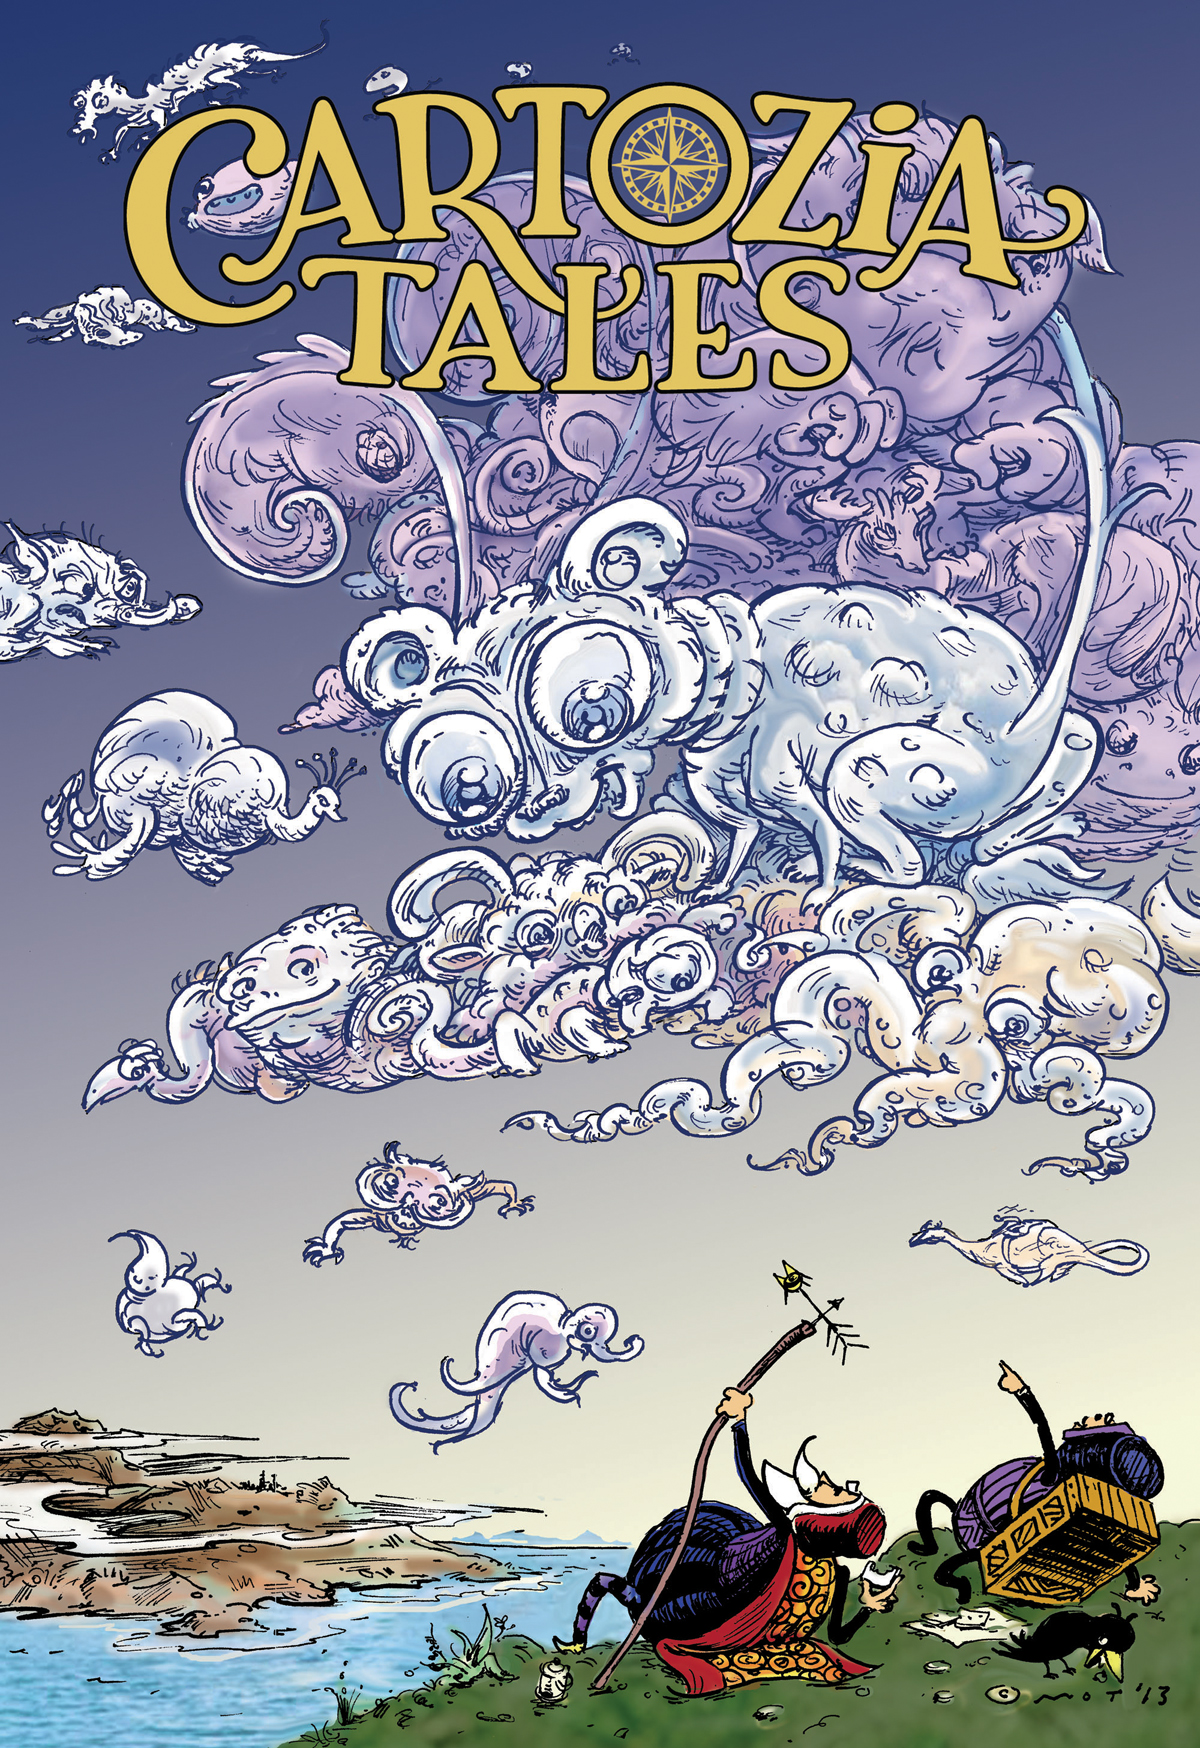 Cartozia Tales back cover & promo